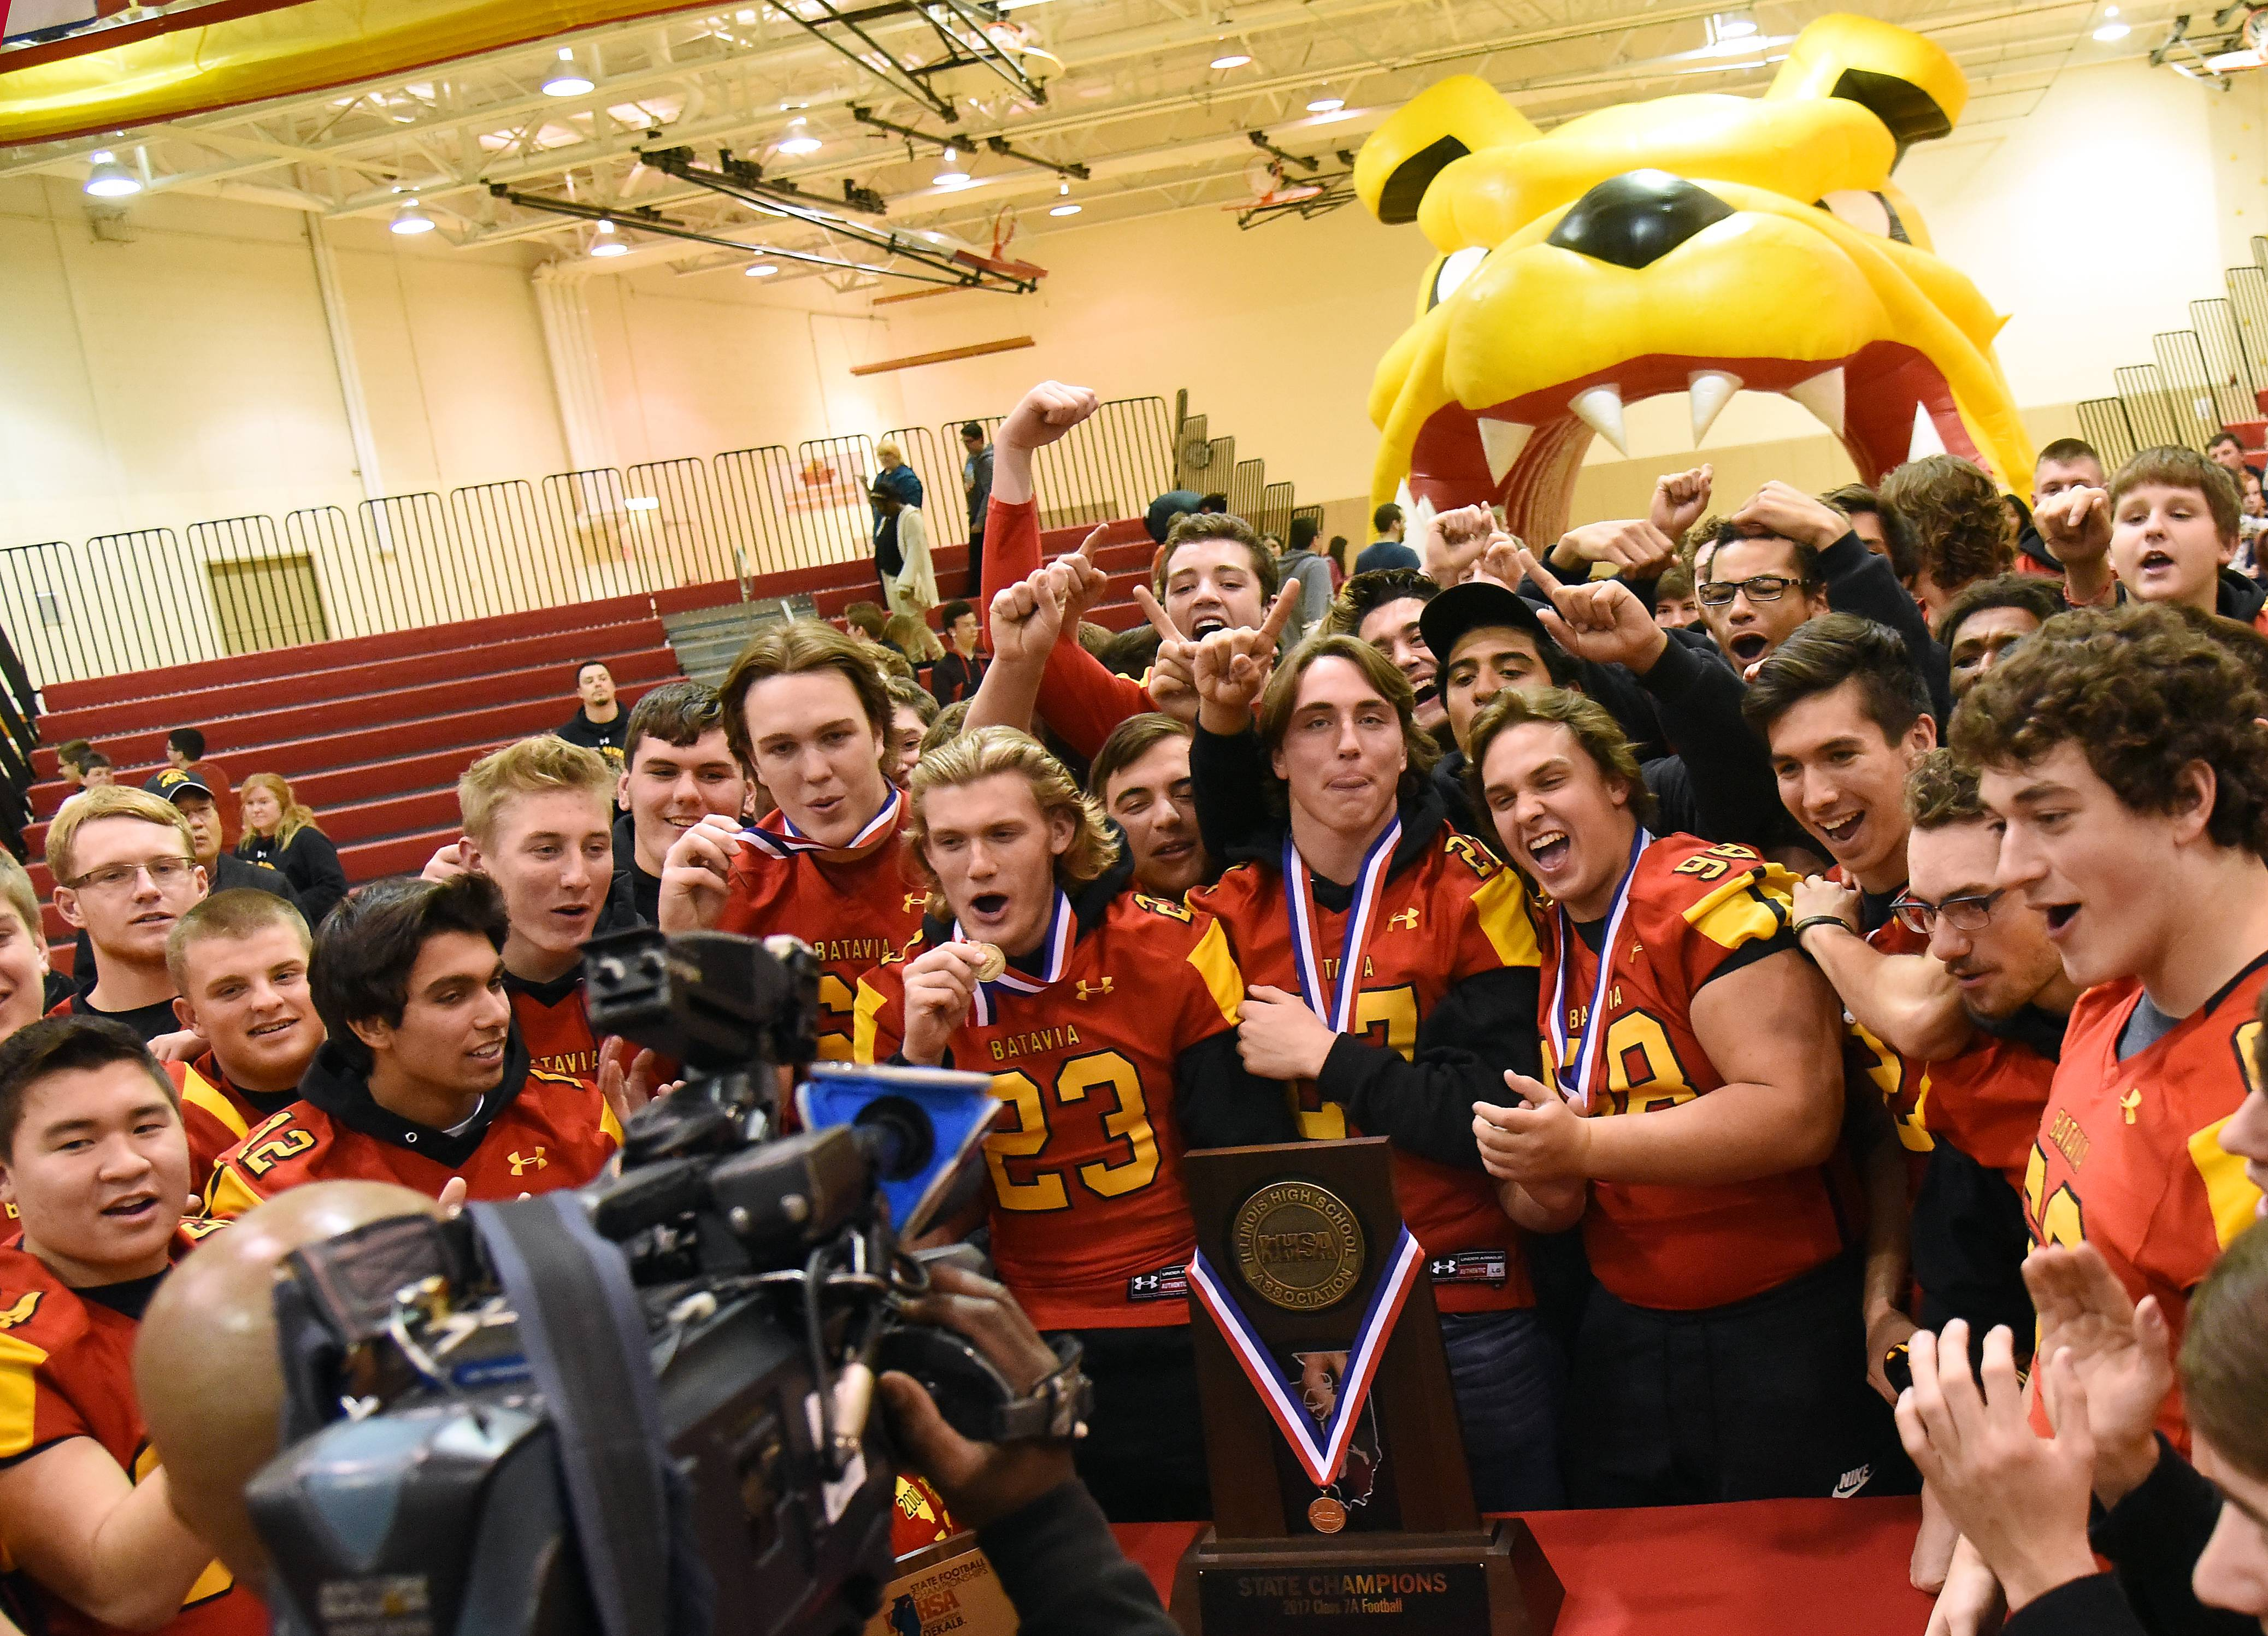 Batavia High School football players mug for a TV camera after an assembly at the school Monday to honor their state championship on Saturday in DeKalb. The Bulldogs defeated Lake Zurich 21-14 in overtime to win the IHSA Class 7A title.